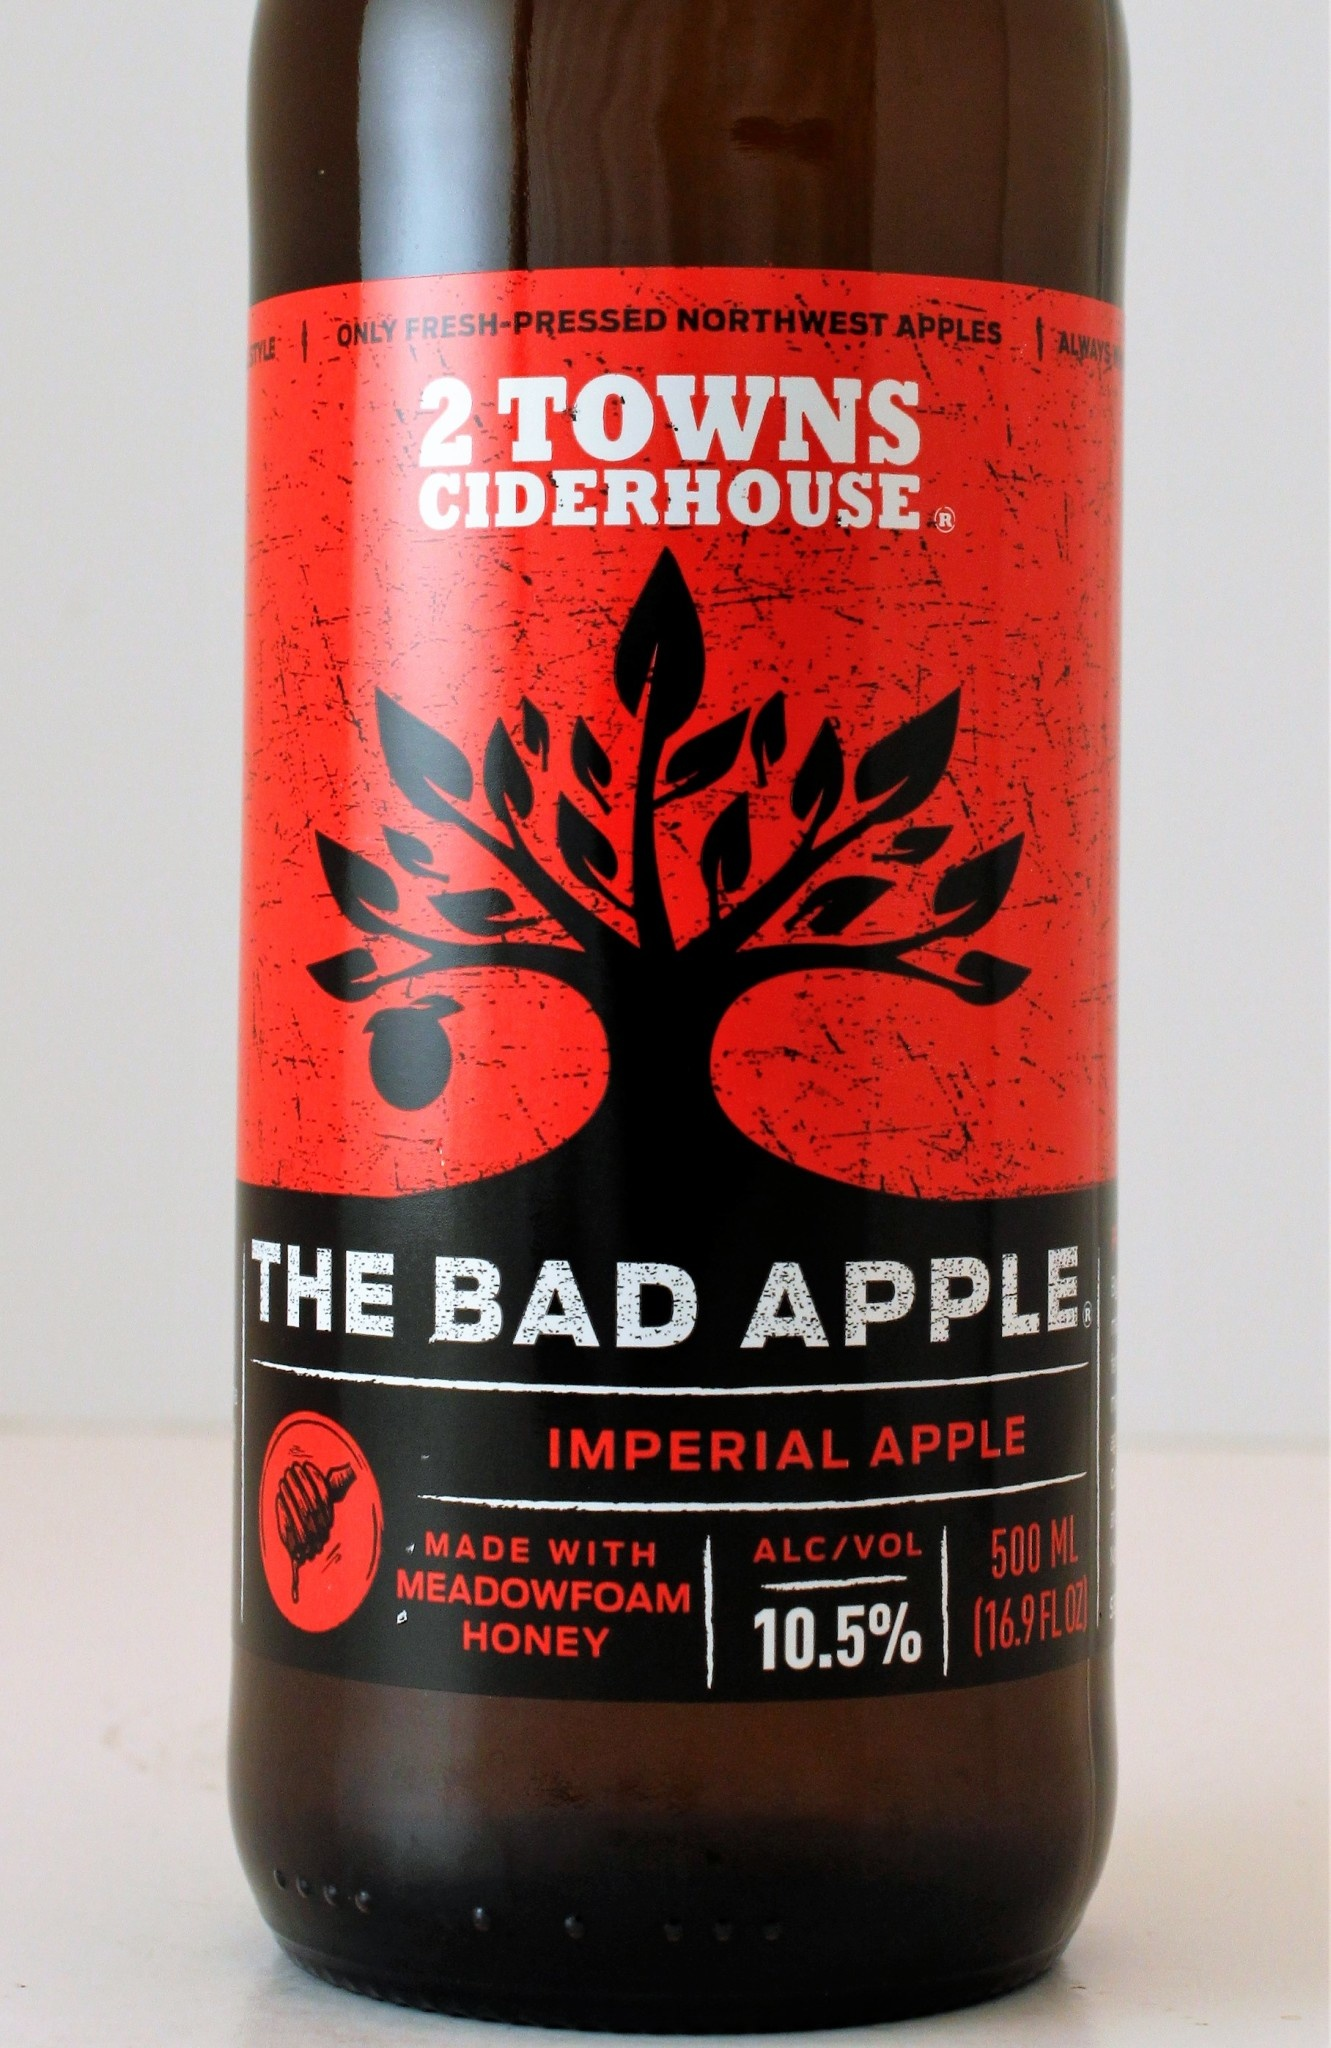 """2 Towns Ciderhouse """"The Bad Apple"""" Imperial Apple Cider, Corvallis, Oregon"""